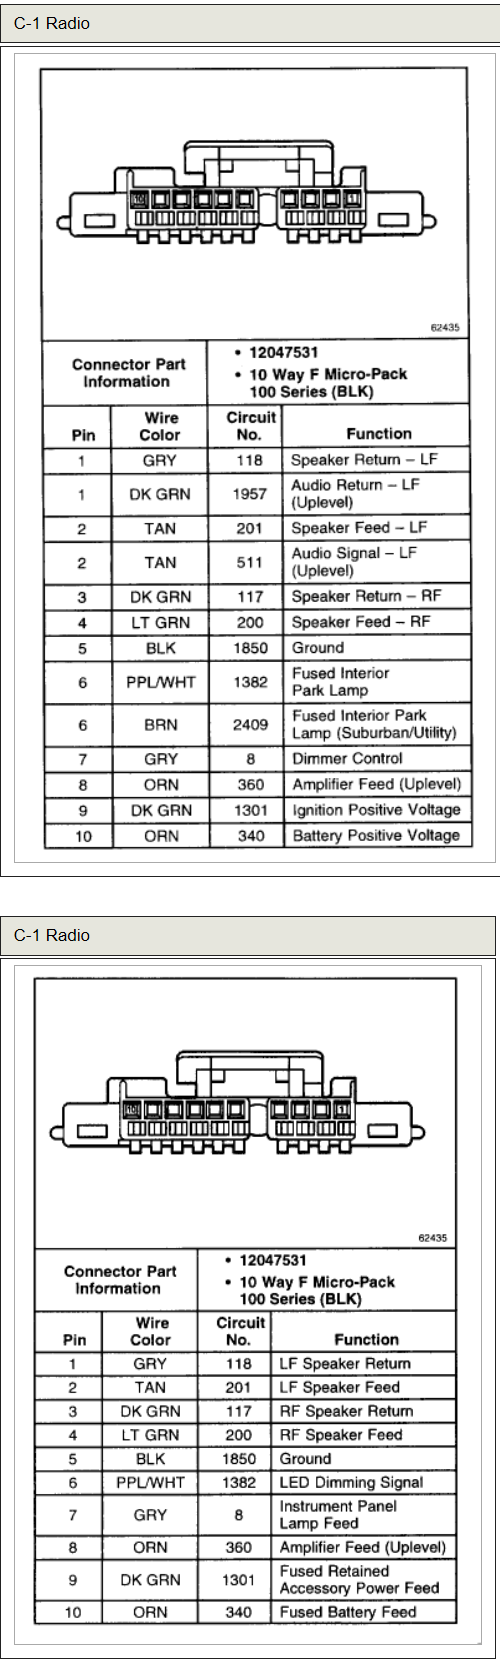 Chevrolet Car Radio Stereo Audio Wiring Diagram Autoradio Connector C5500 Brake Light Pigtail Wire Installation Schematic Schema Esquema De Conexiones Anschlusskammern Konektor